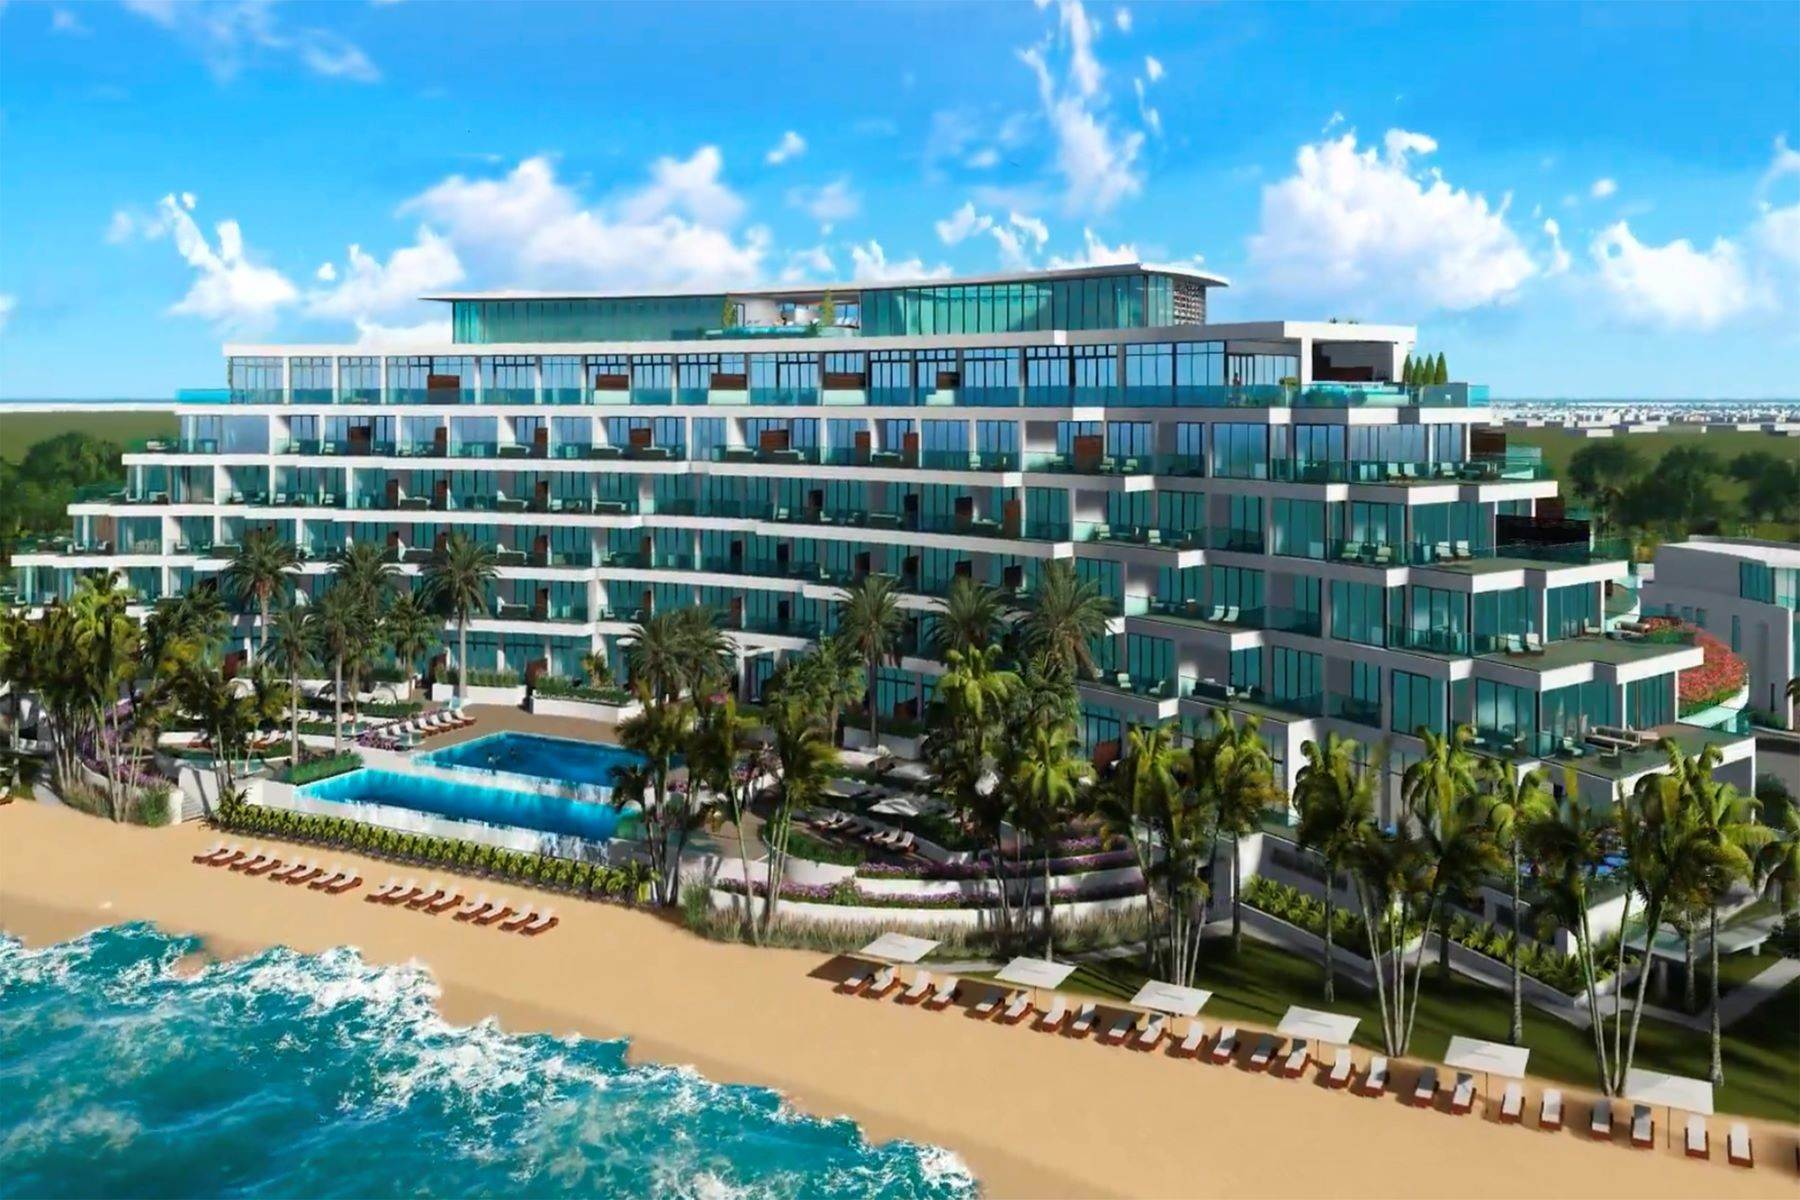 Property for Sale at The Residences at GoldWynn Three Bedroom Beach 225 Cable Beach, Nassau And Paradise Island Bahamas